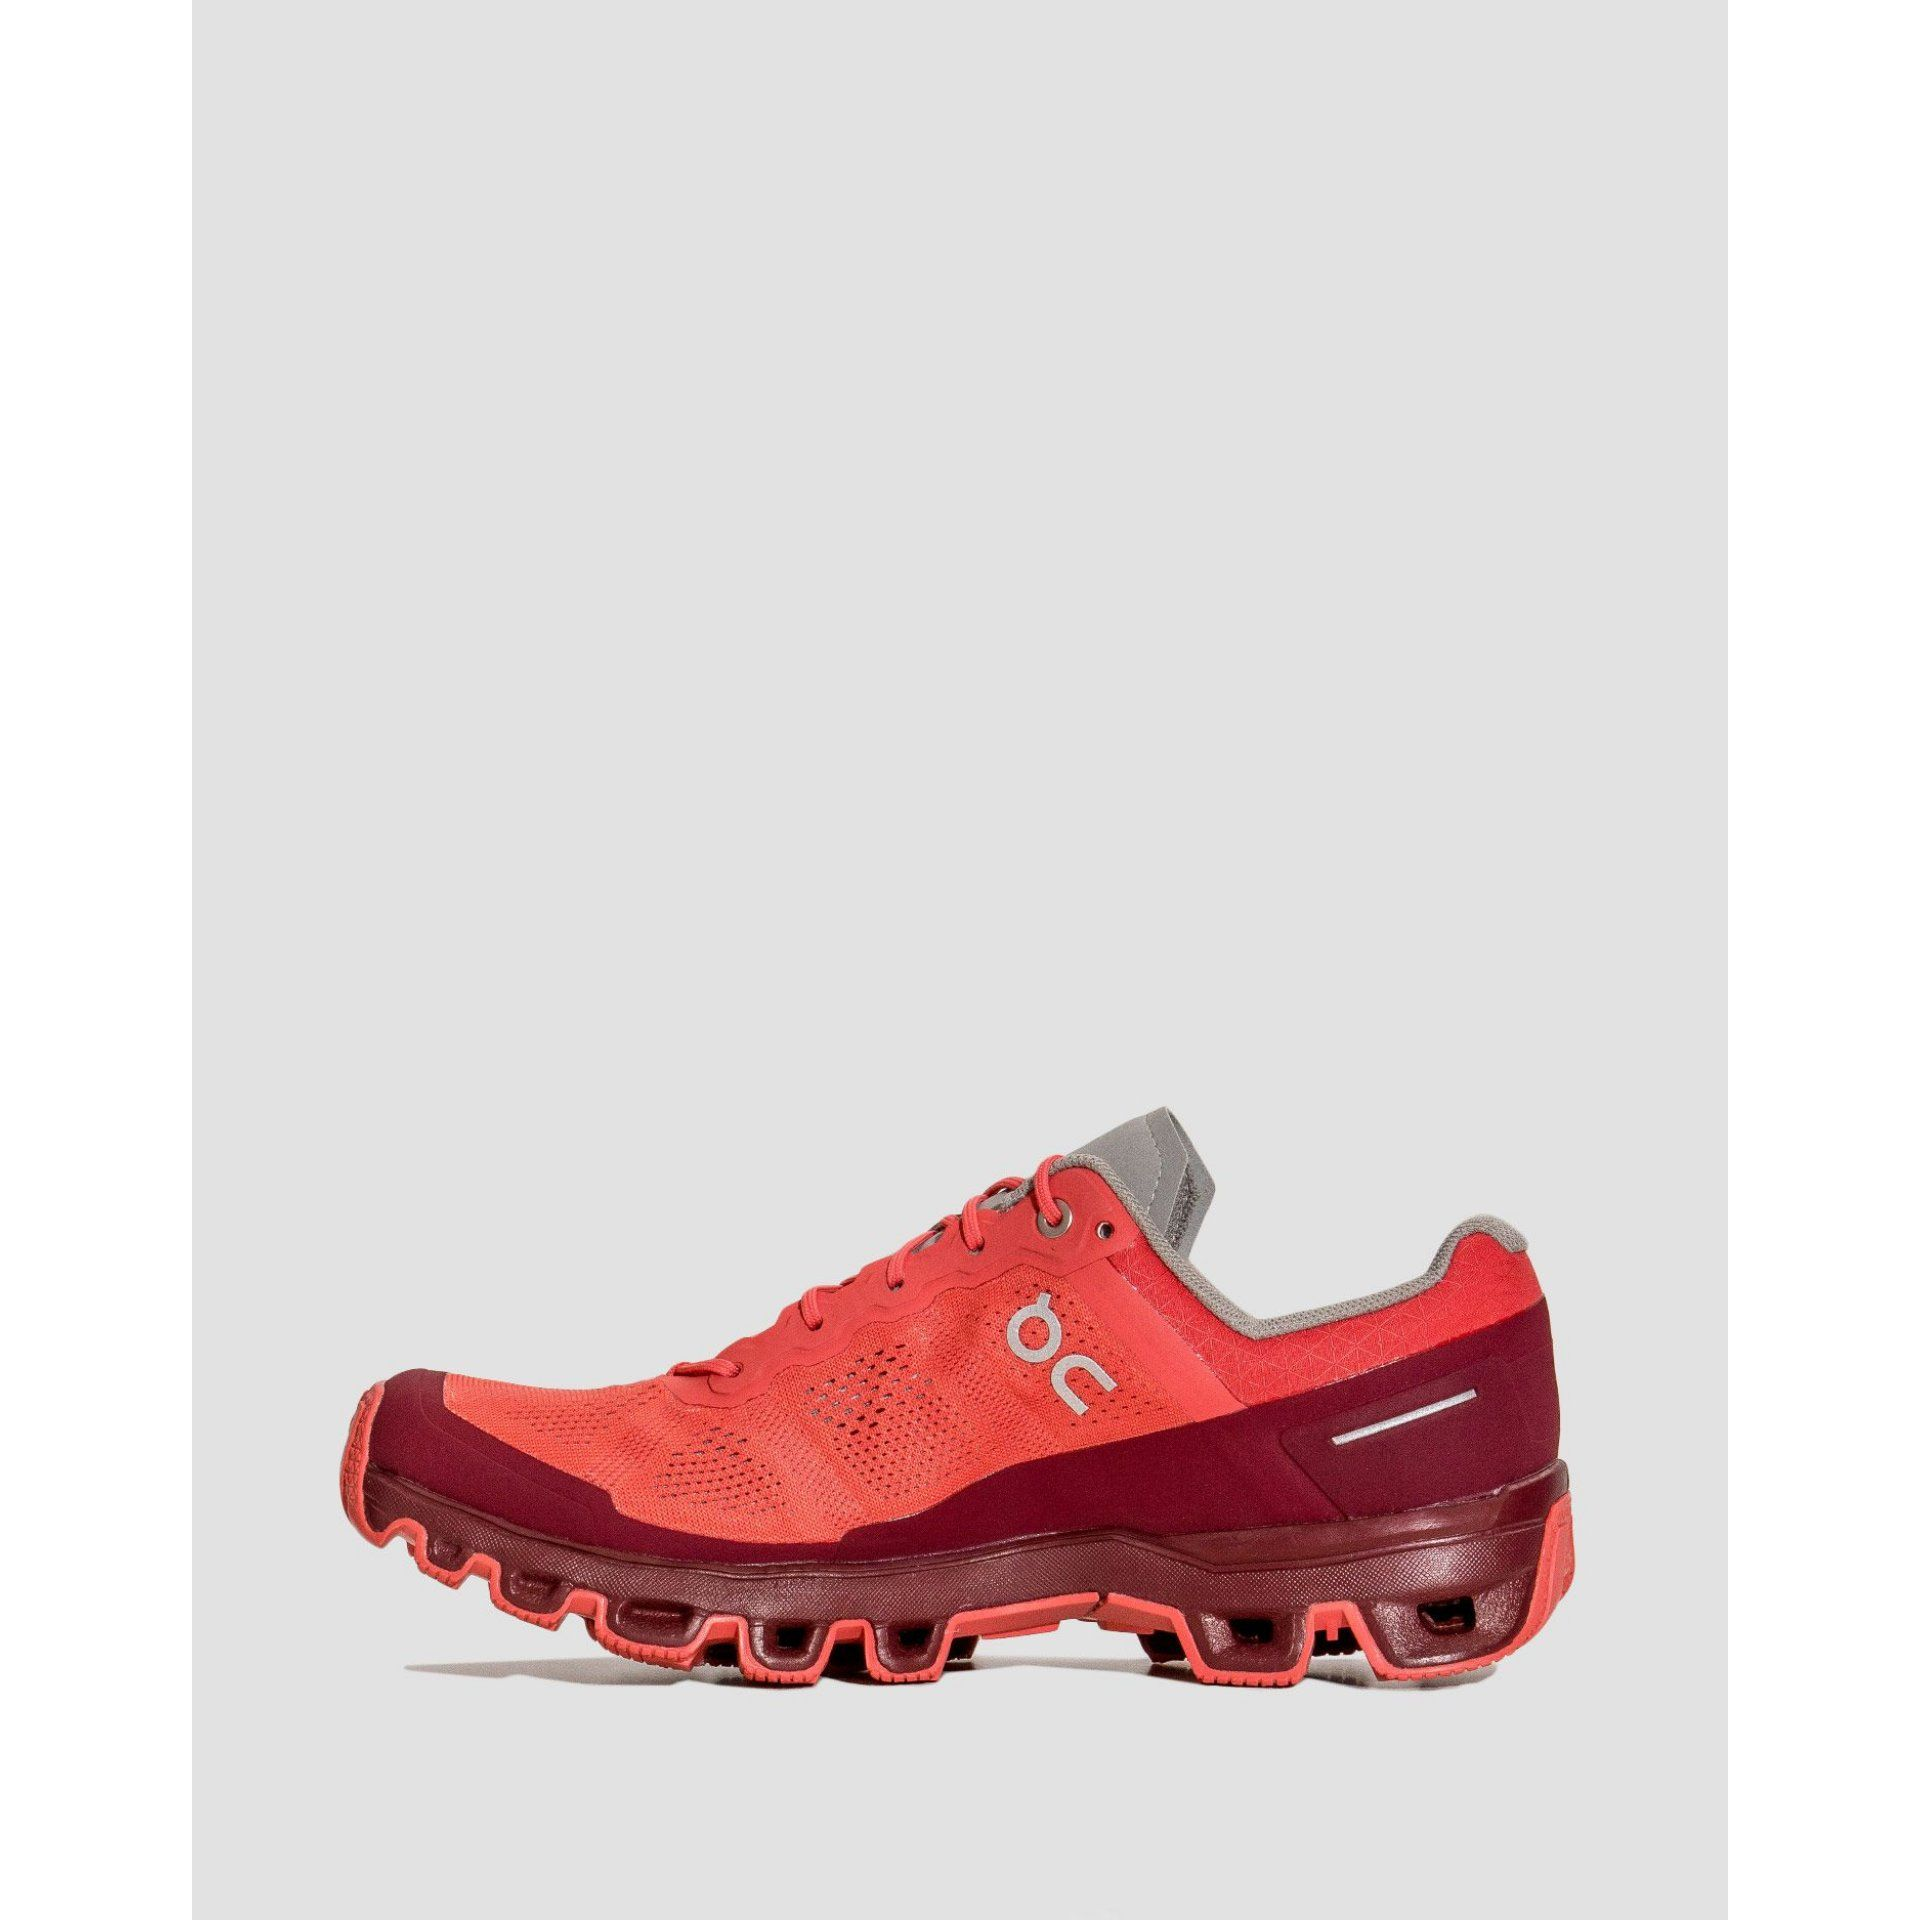 BUTY DO BIEGANIA ON RUNNING CLOUDVENTURE W CORAL|MULBERRY 3